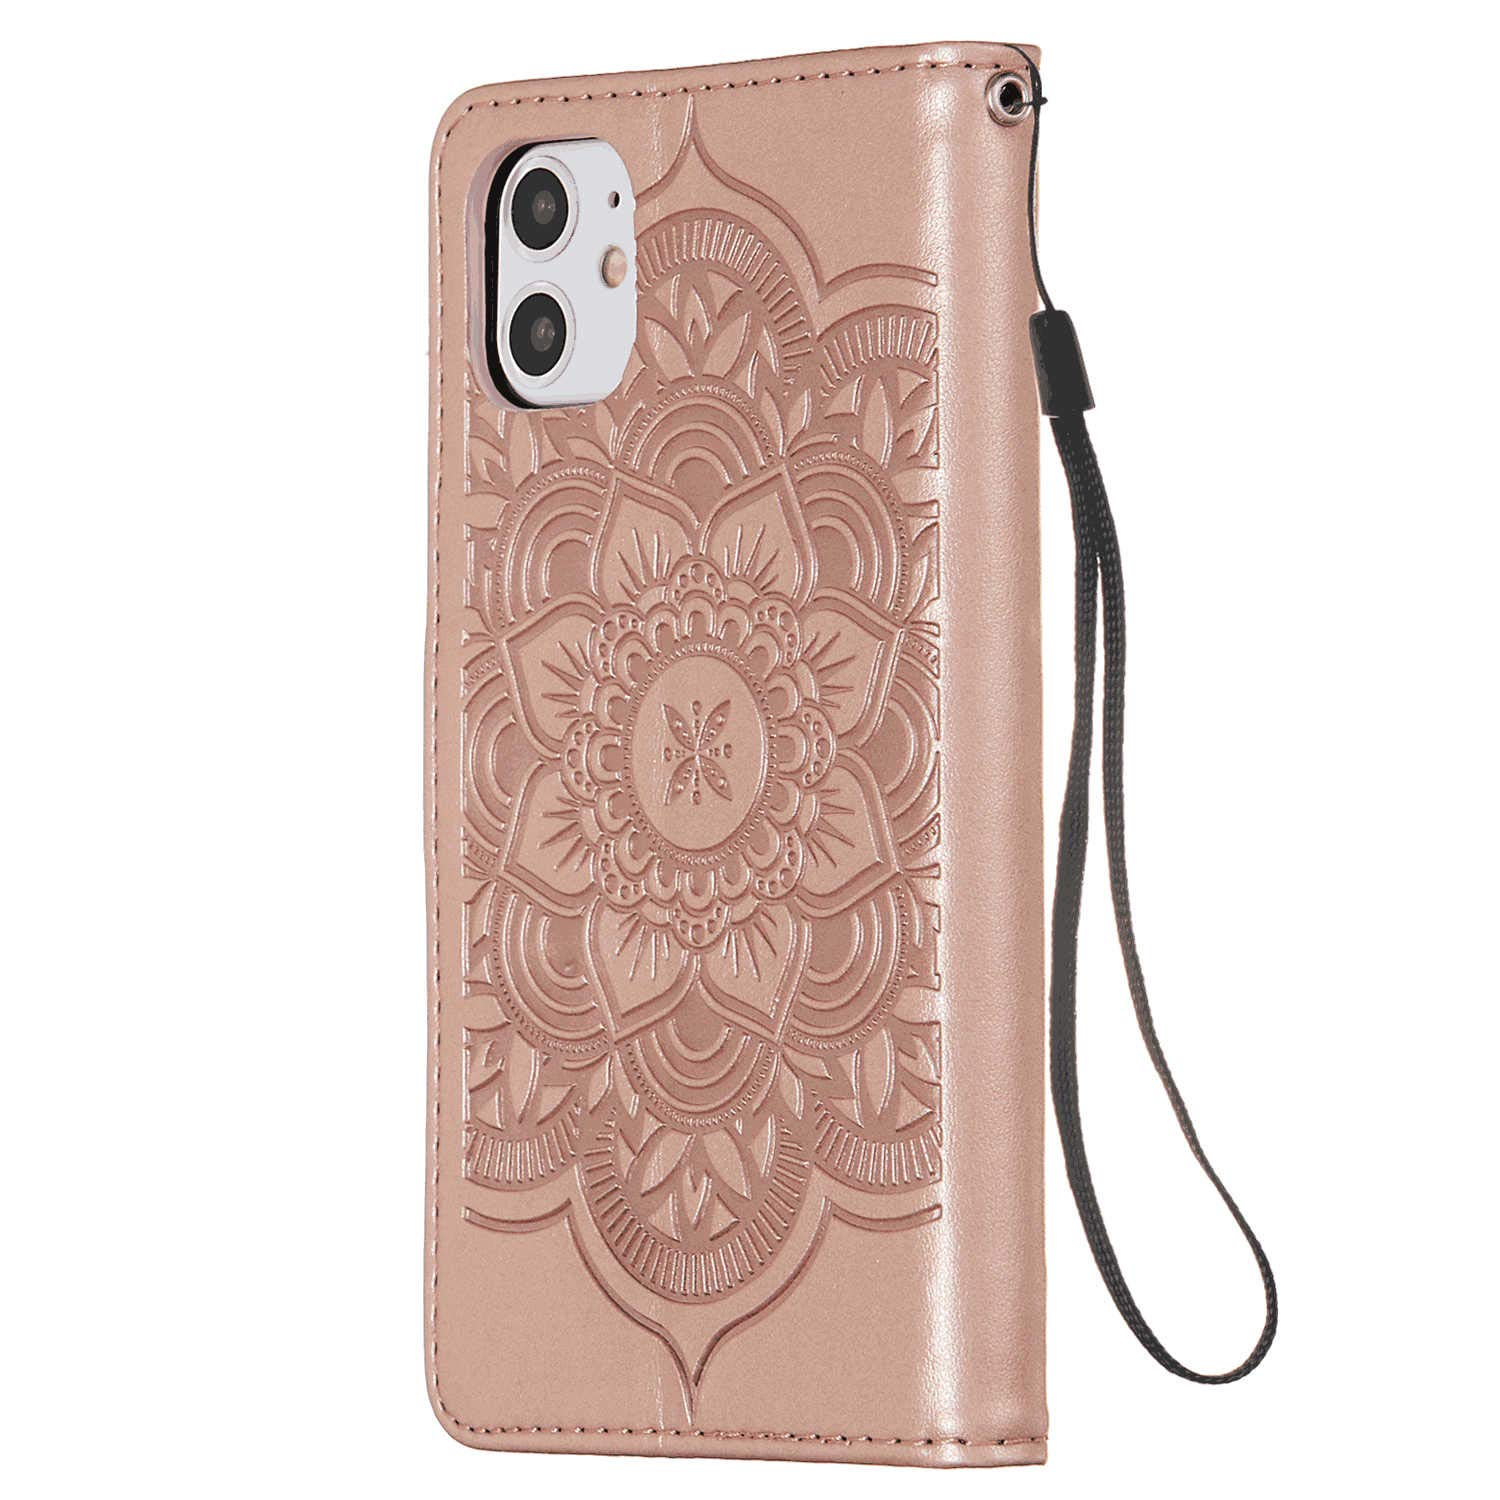 Green Wallet Case for iPhone 11 Pro Max Leather Cover Compatible with iPhone 11 Pro Max